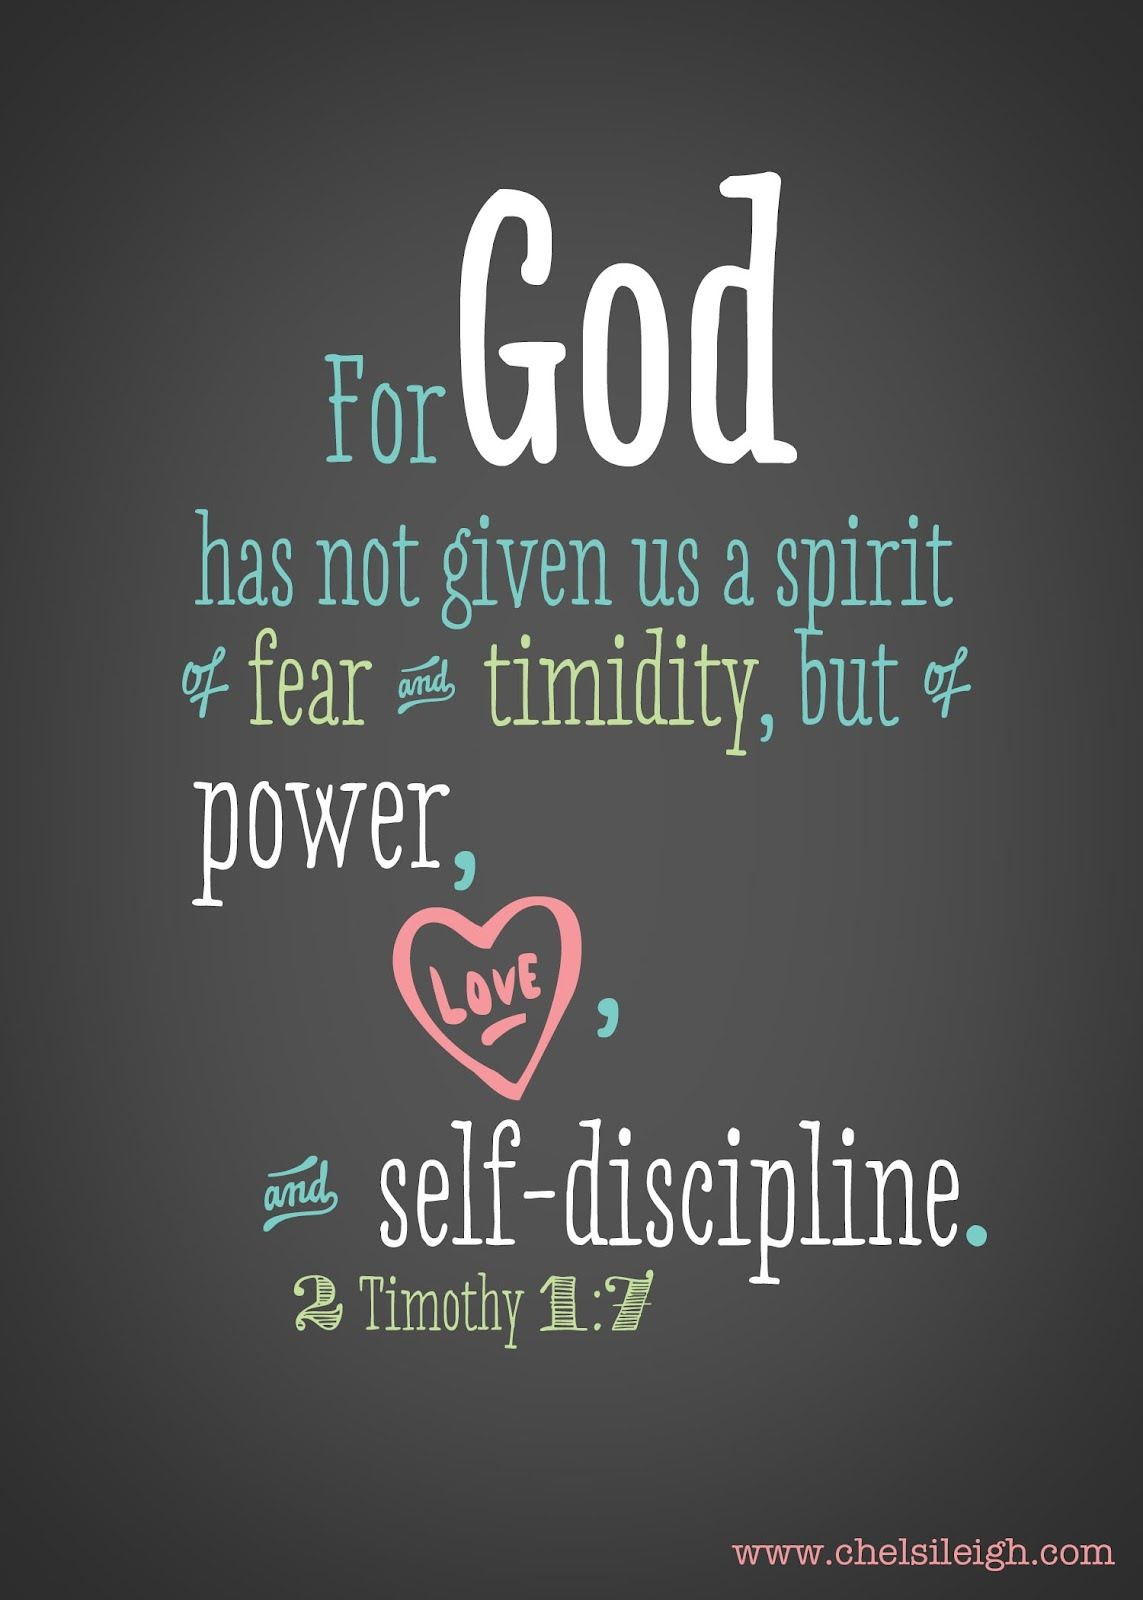 2Timothy 1:7 (NLT) > For God has not given us a spirit of